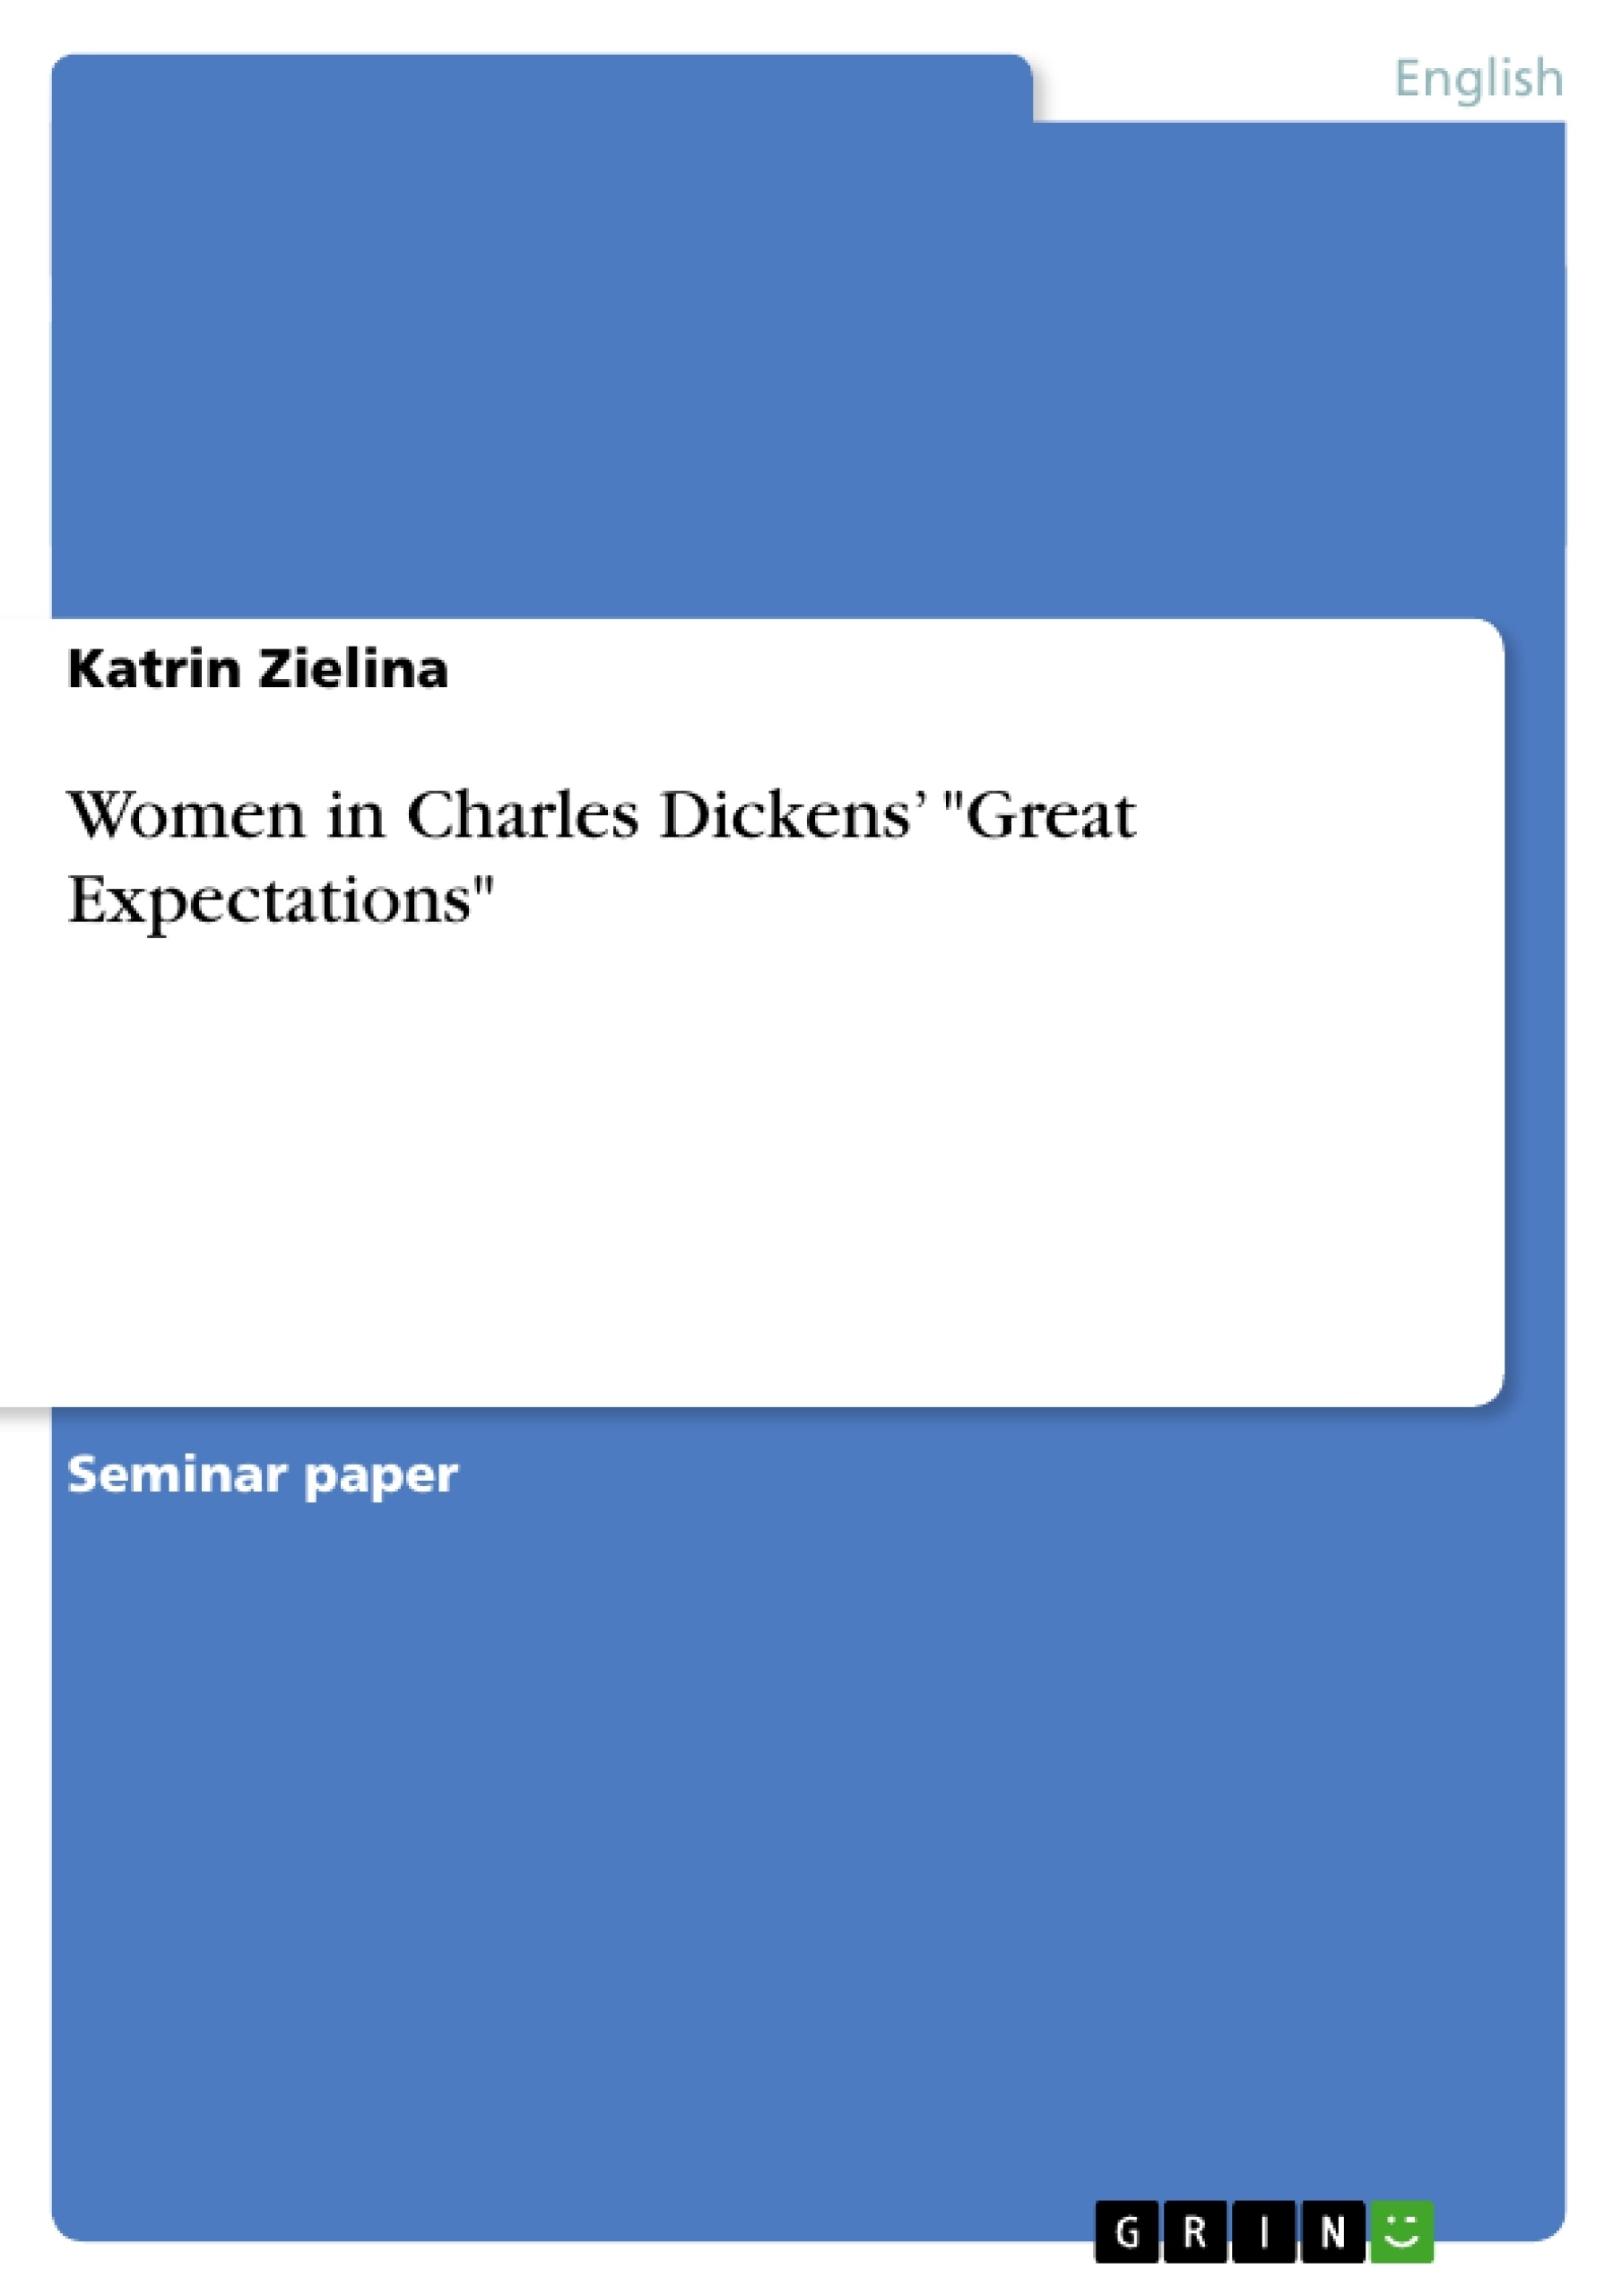 """Title: Women in Charles Dickens' """"Great Expectations"""""""